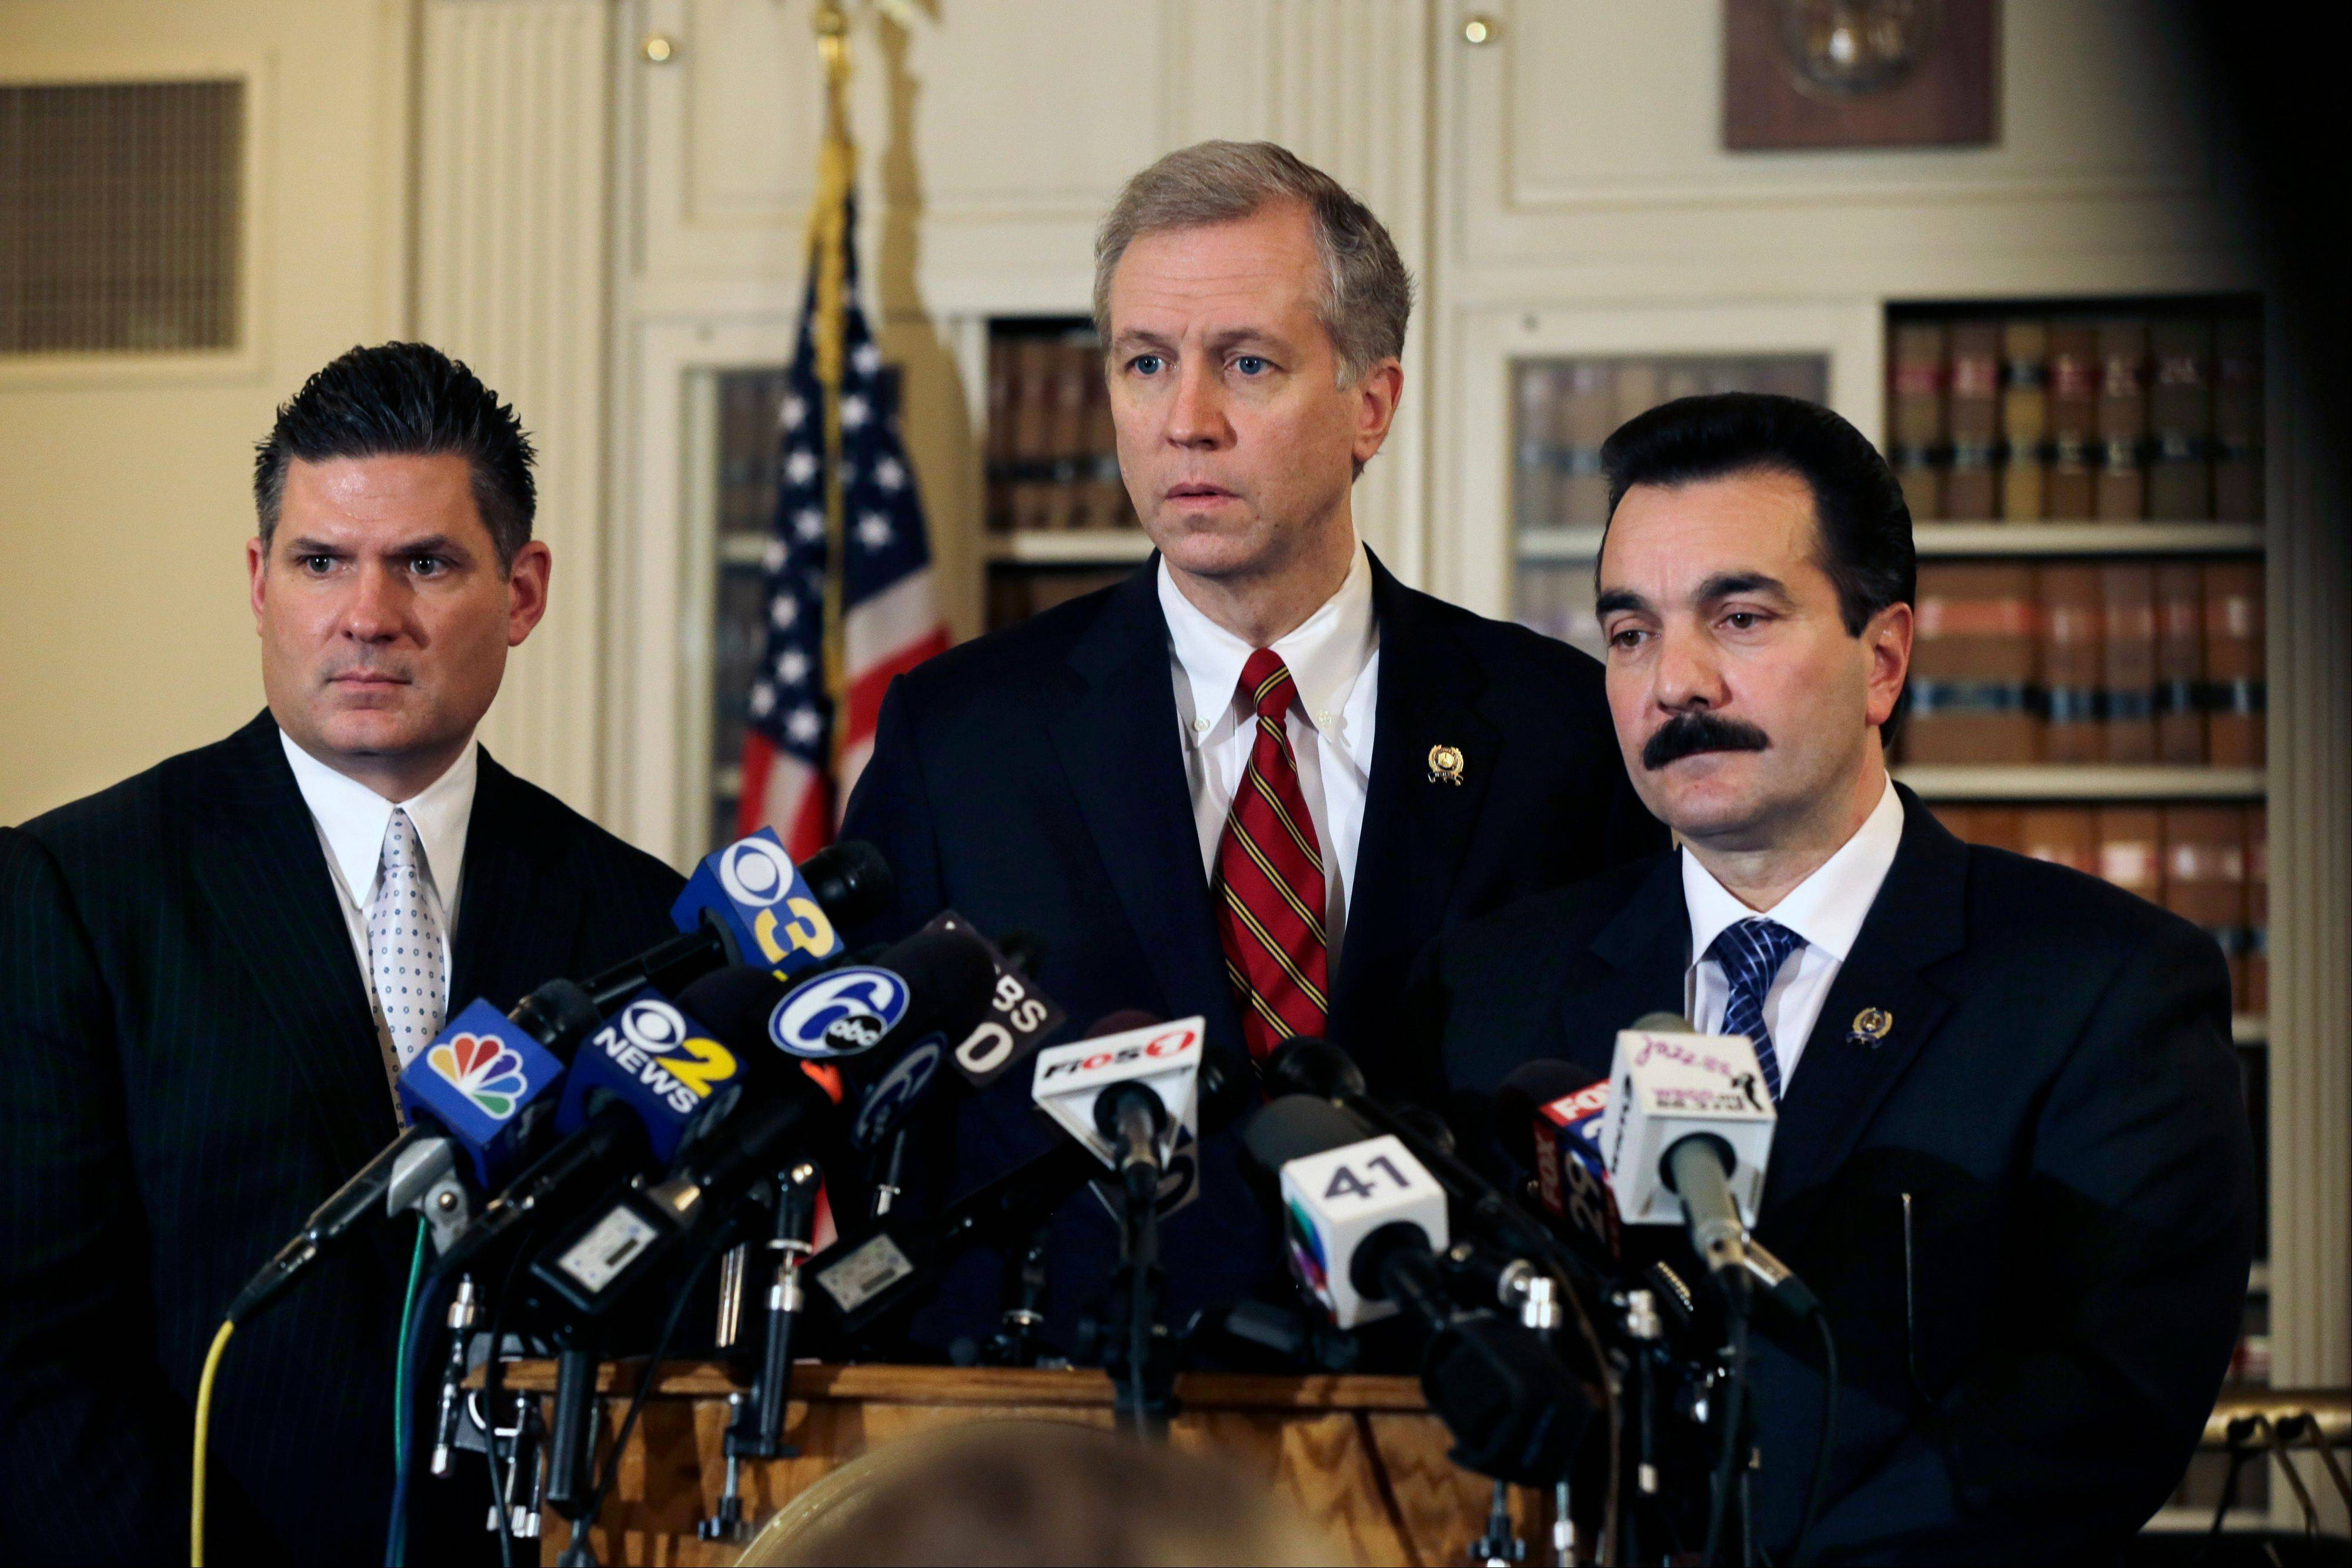 New Jersey Assemblymen John S. Wisniewski, center, Lou D. Greenwald, left, and incoming Assembly Speaker Vincent Prieto, all Democrats, address the media Monday in Trenton, N.J. Greenwald said an investigation into massive local traffic jams that has ensnared Gov. Chris Christie's administration has grown into an abuse of power probe.